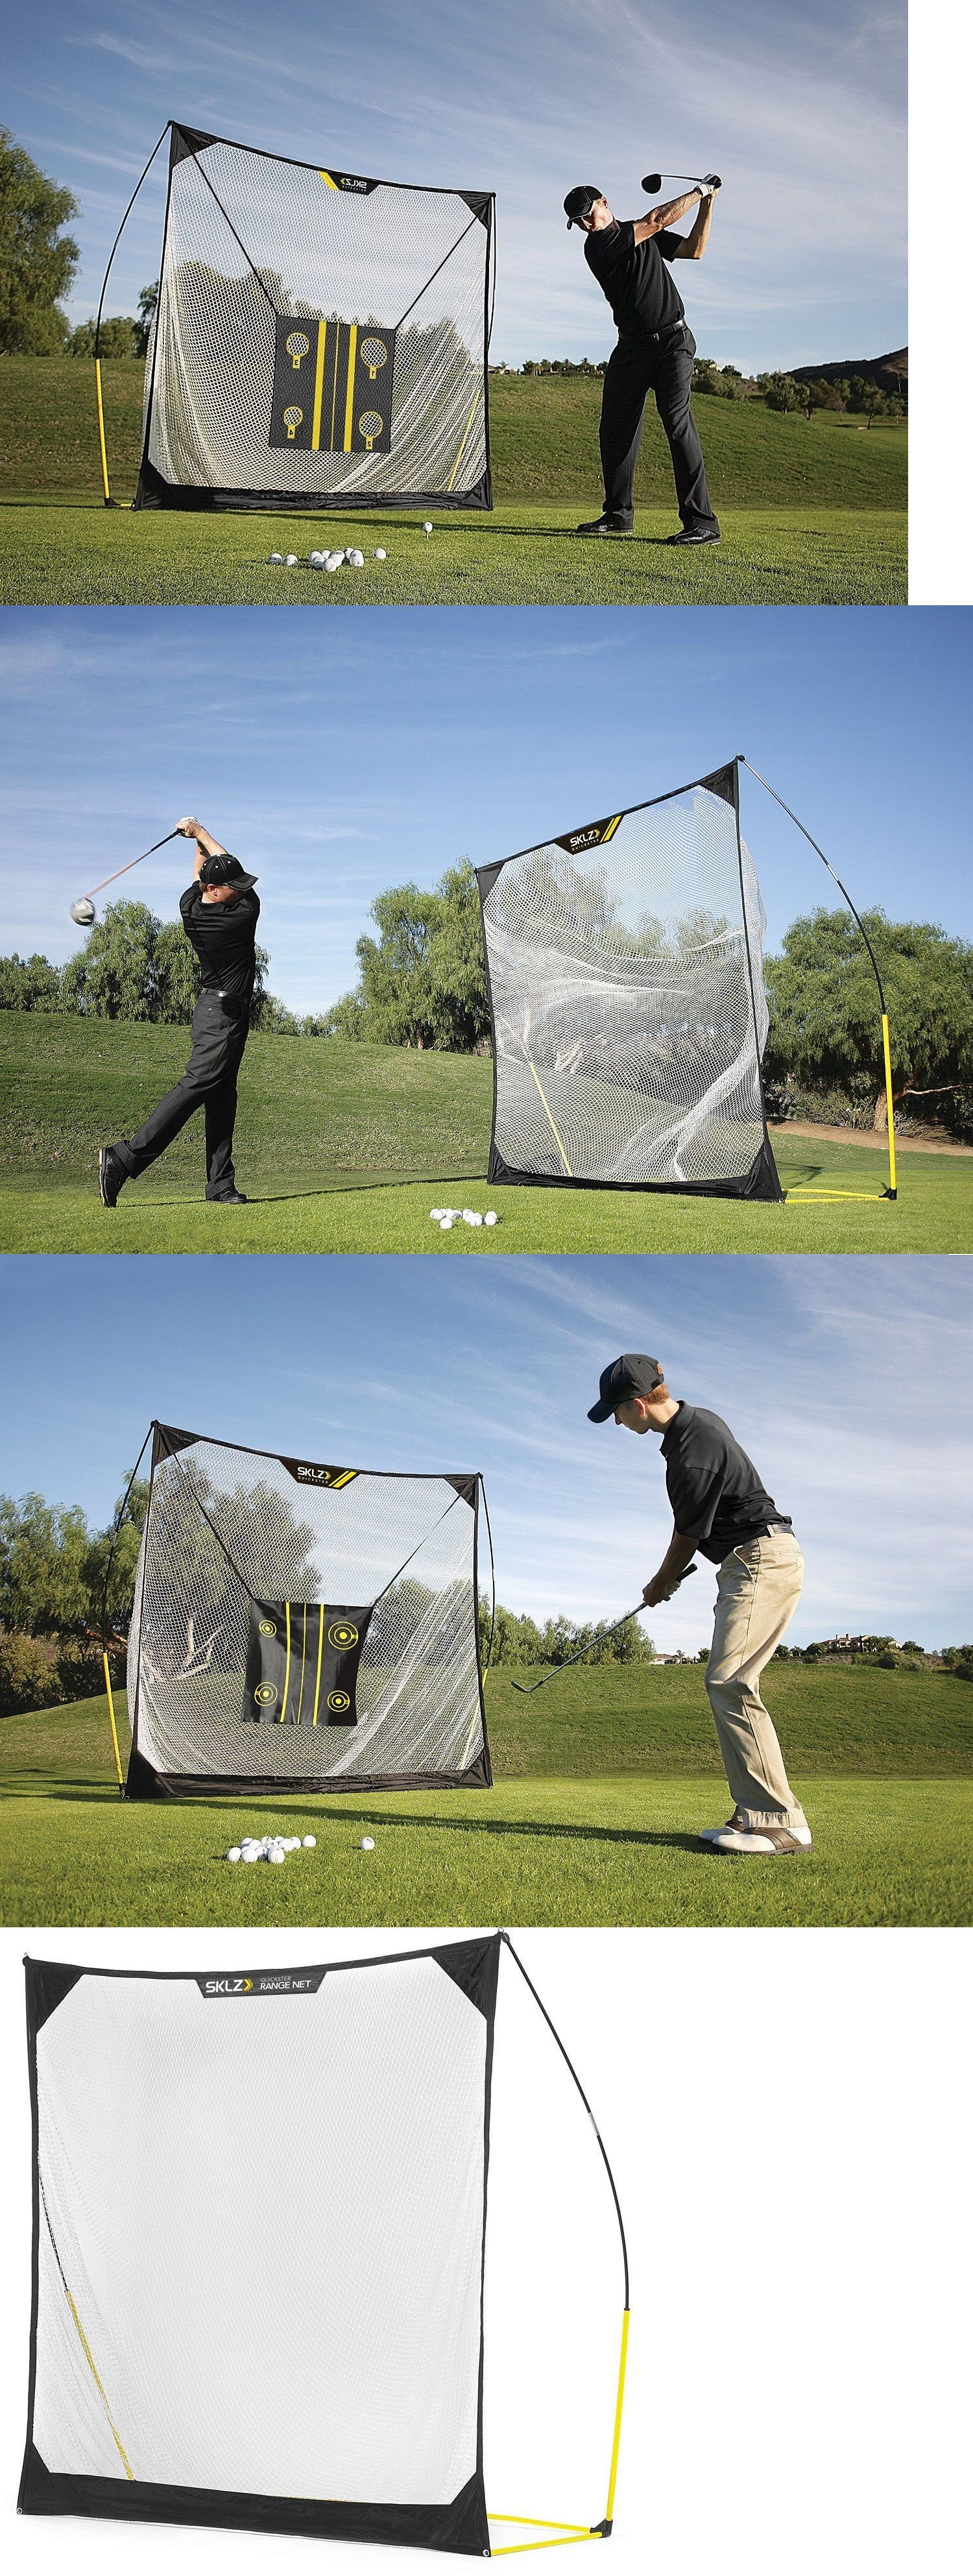 nets cages and mats 50876 golf swing practice net 6 x6 backyard